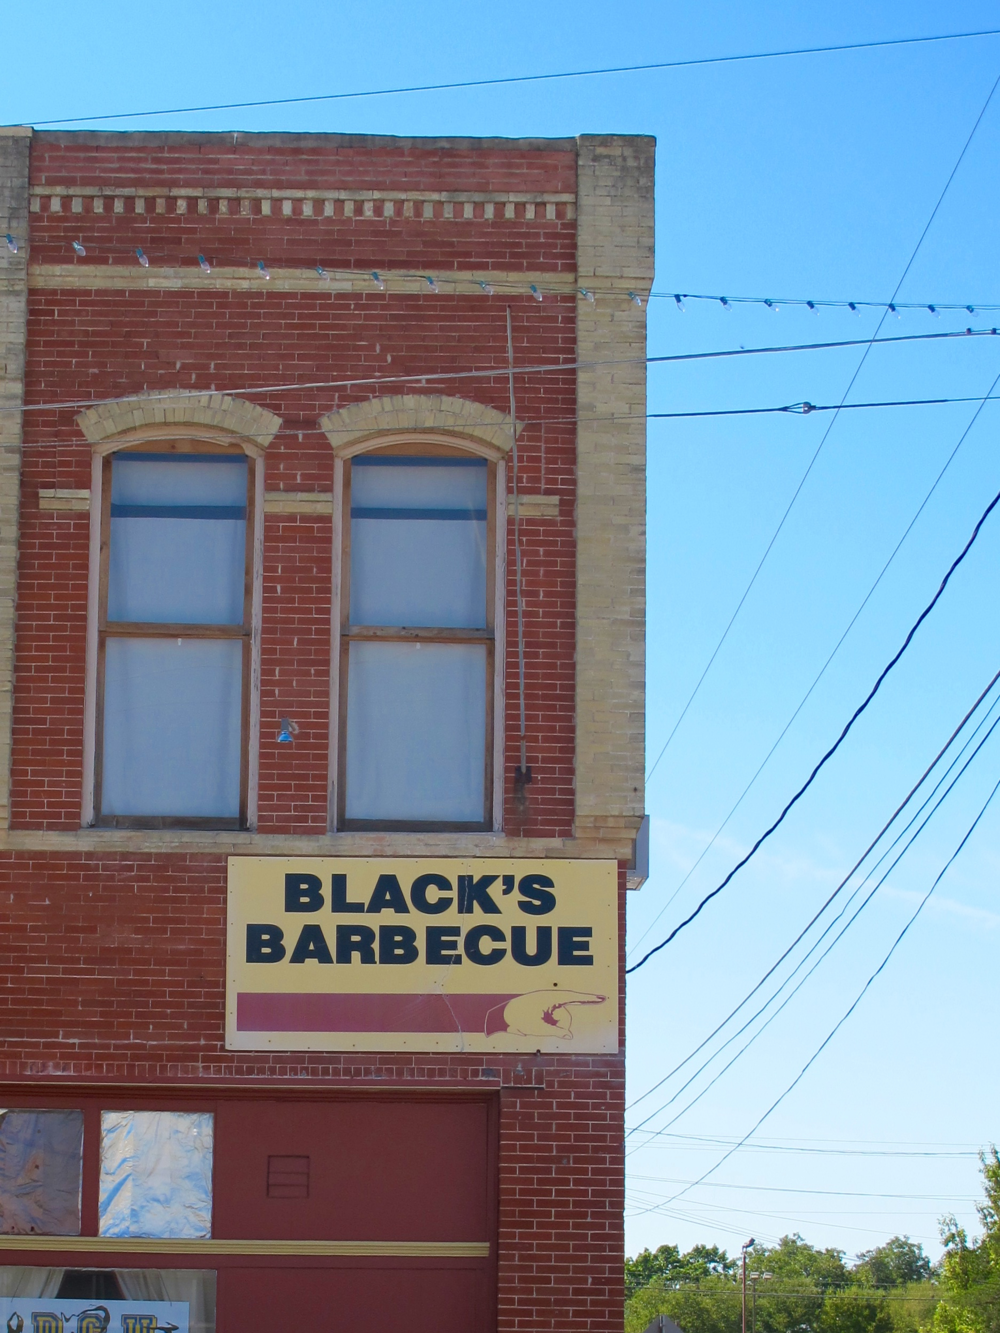 Blacks BBQ, Lockhart Texas